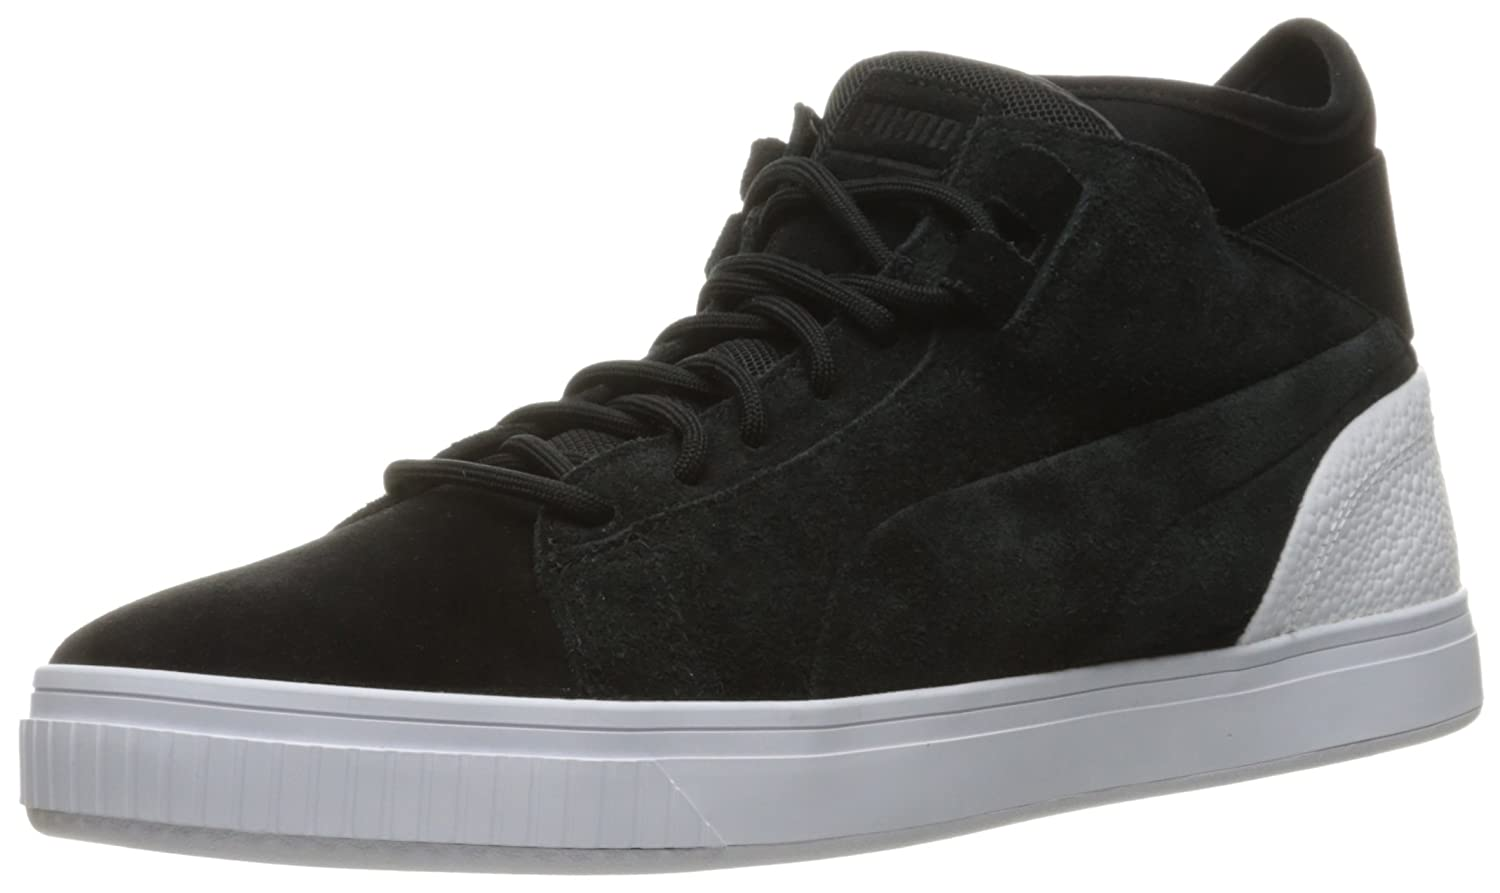 Puma Men's Play B&C Fashion Turnschuhe